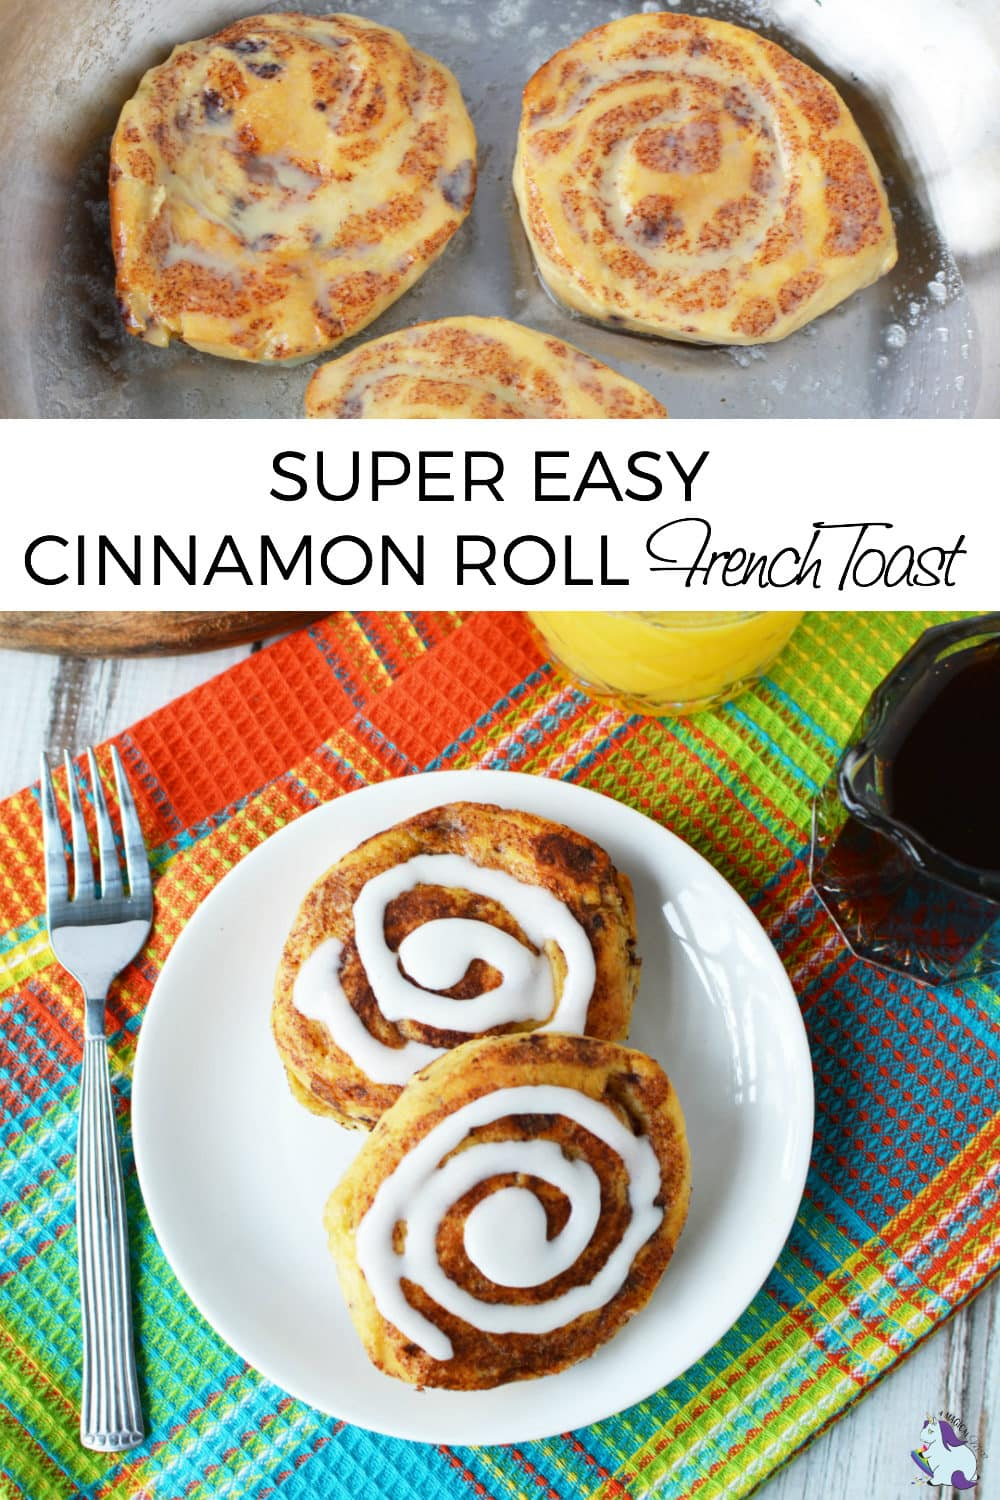 Super duper crowd pleaser - Cinnamon Roll French Toast recipe